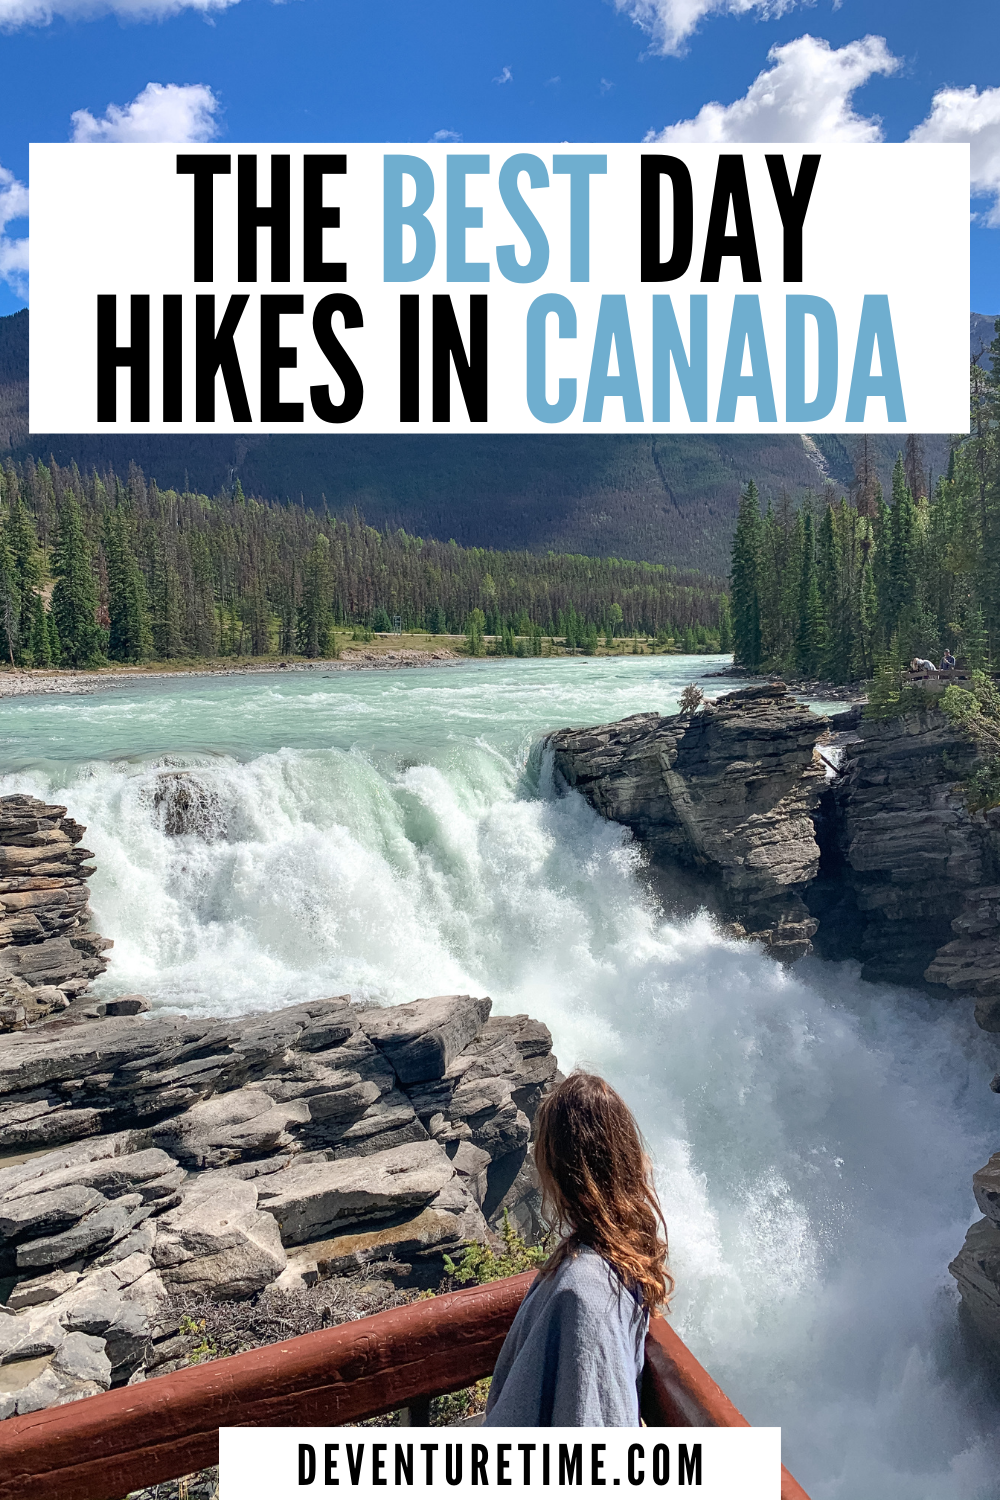 15 of the Absolute Best Day Hikes In Canada